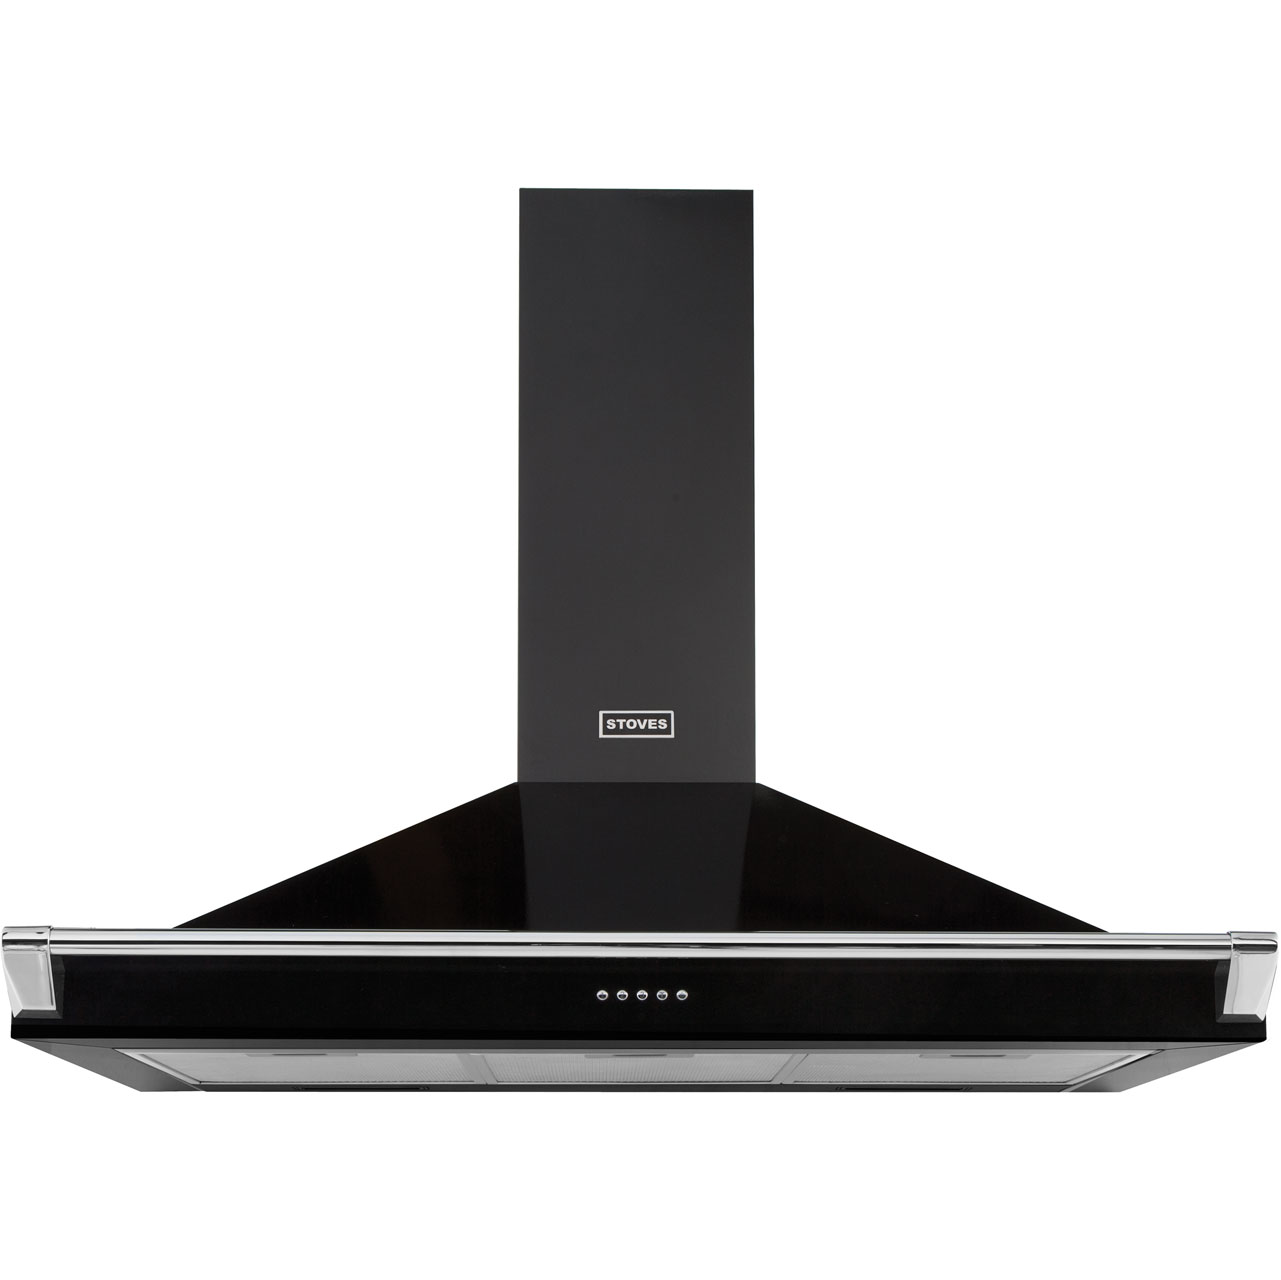 Stoves 1100RICHMONDCHRAILMK2 Integrated Cooker Hood in Black